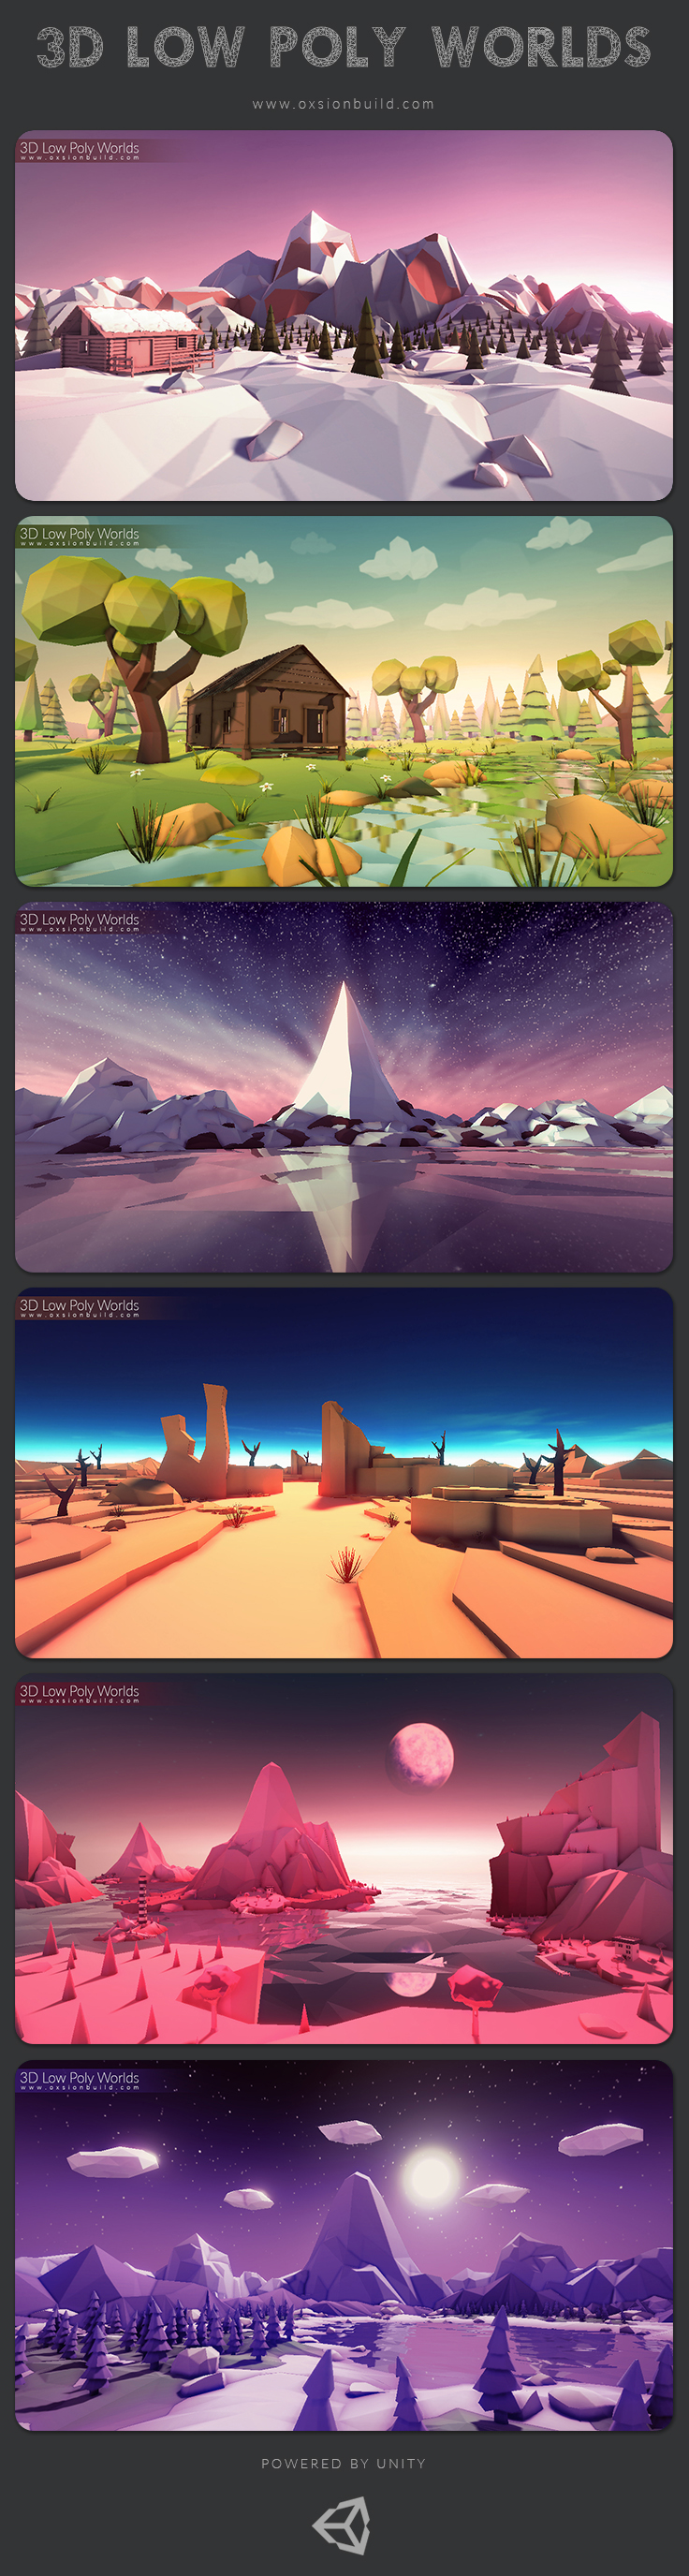 3D Low Poly worlds stylized landspace environment